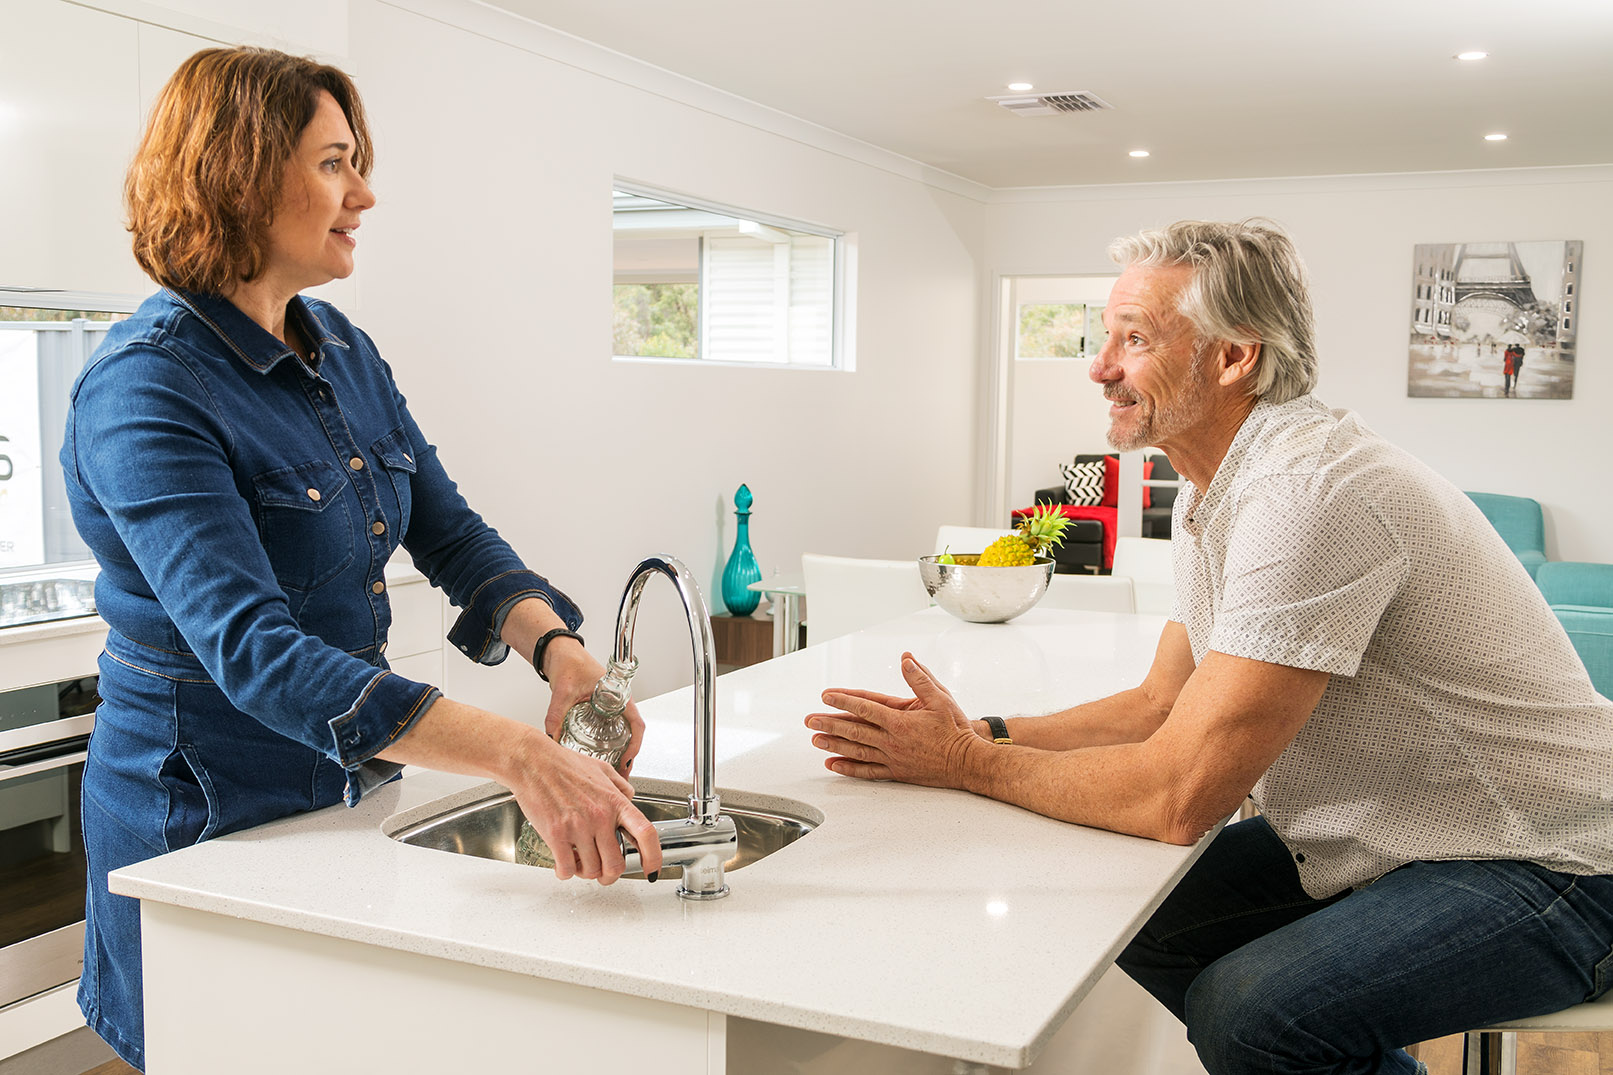 Middle aged couple sitting and standing in the kitchen talking to each other | Modular Homes Perth